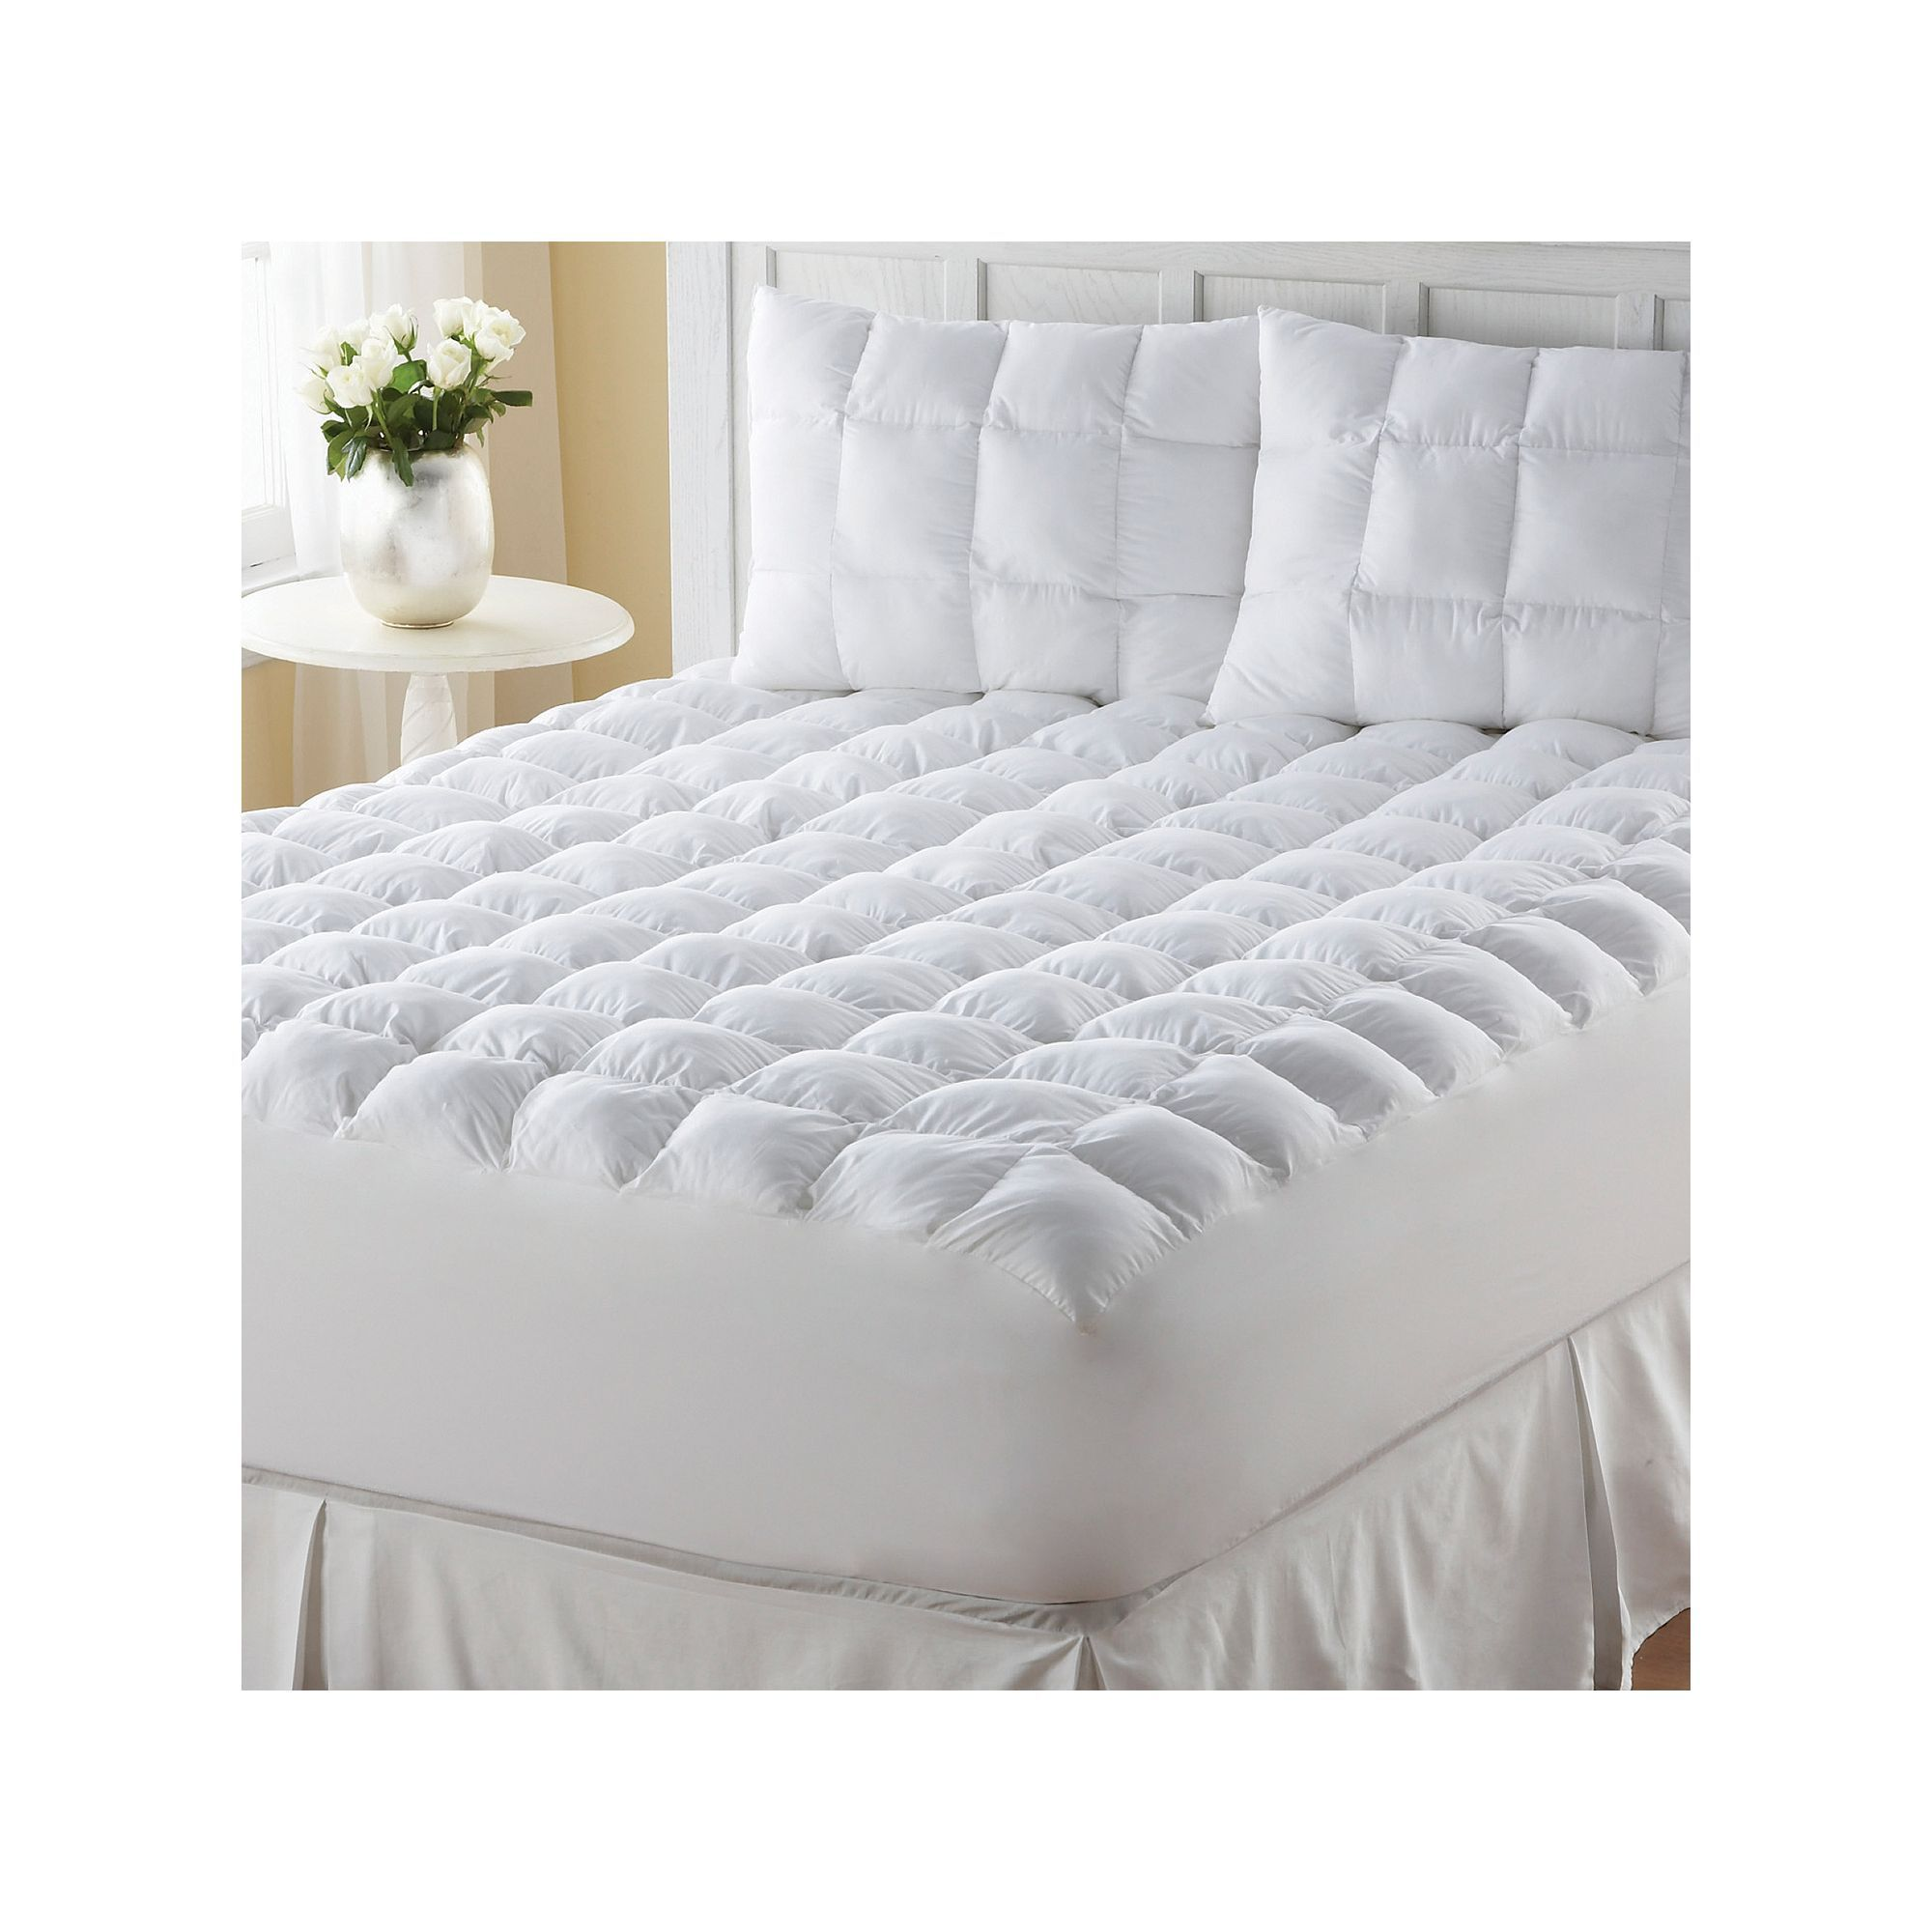 Downalternative deeppocket mattress pad mattress pad mattress